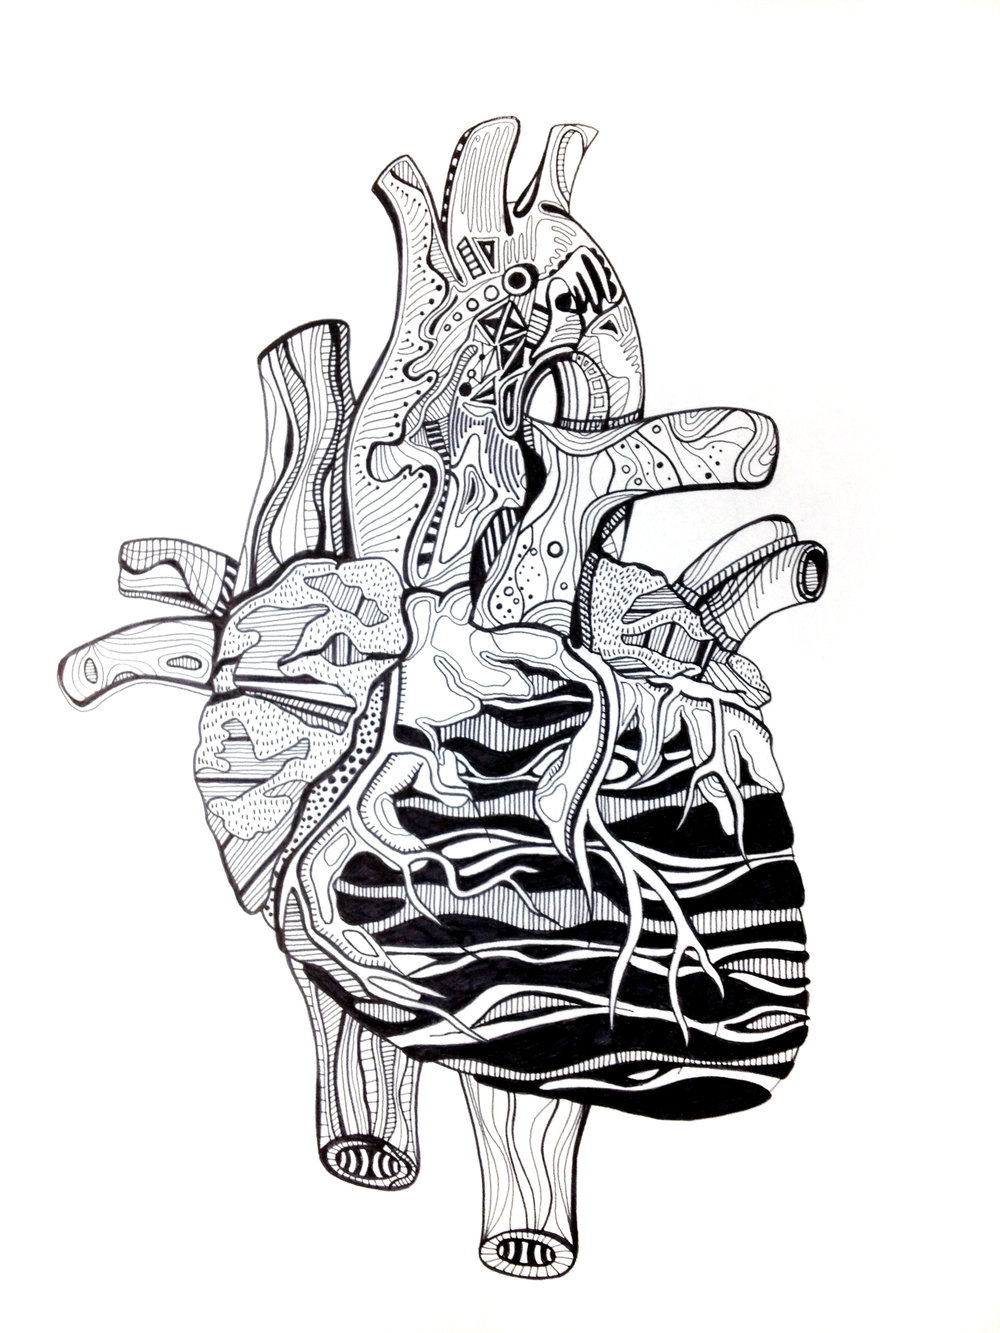 heart_illustration.jpg